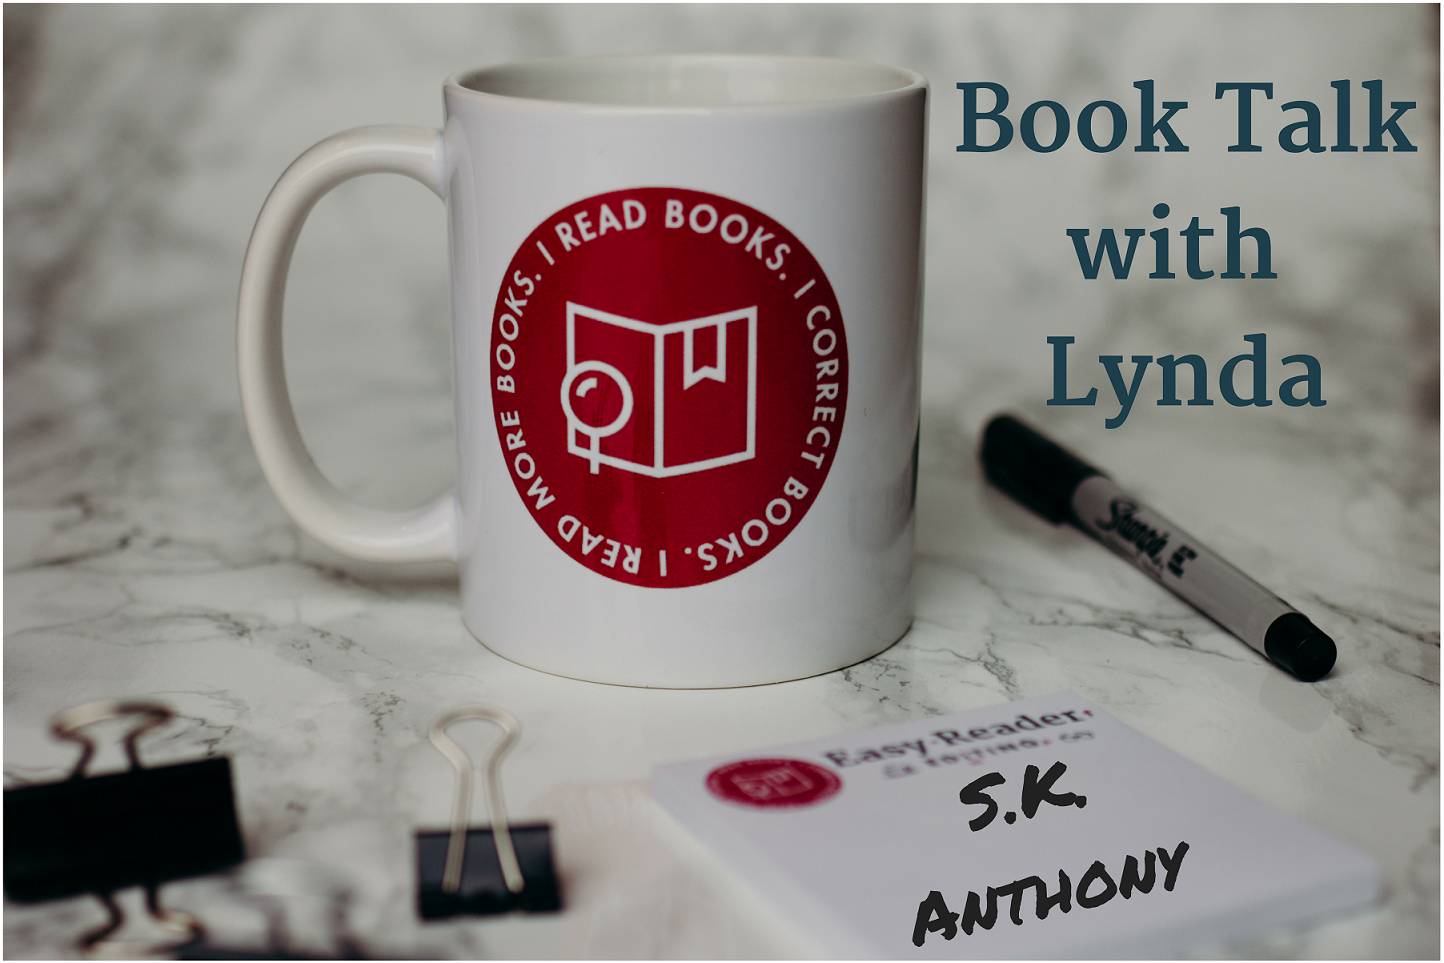 Book Talk with Lynda S.K. Anthony coffee cup with post-it note